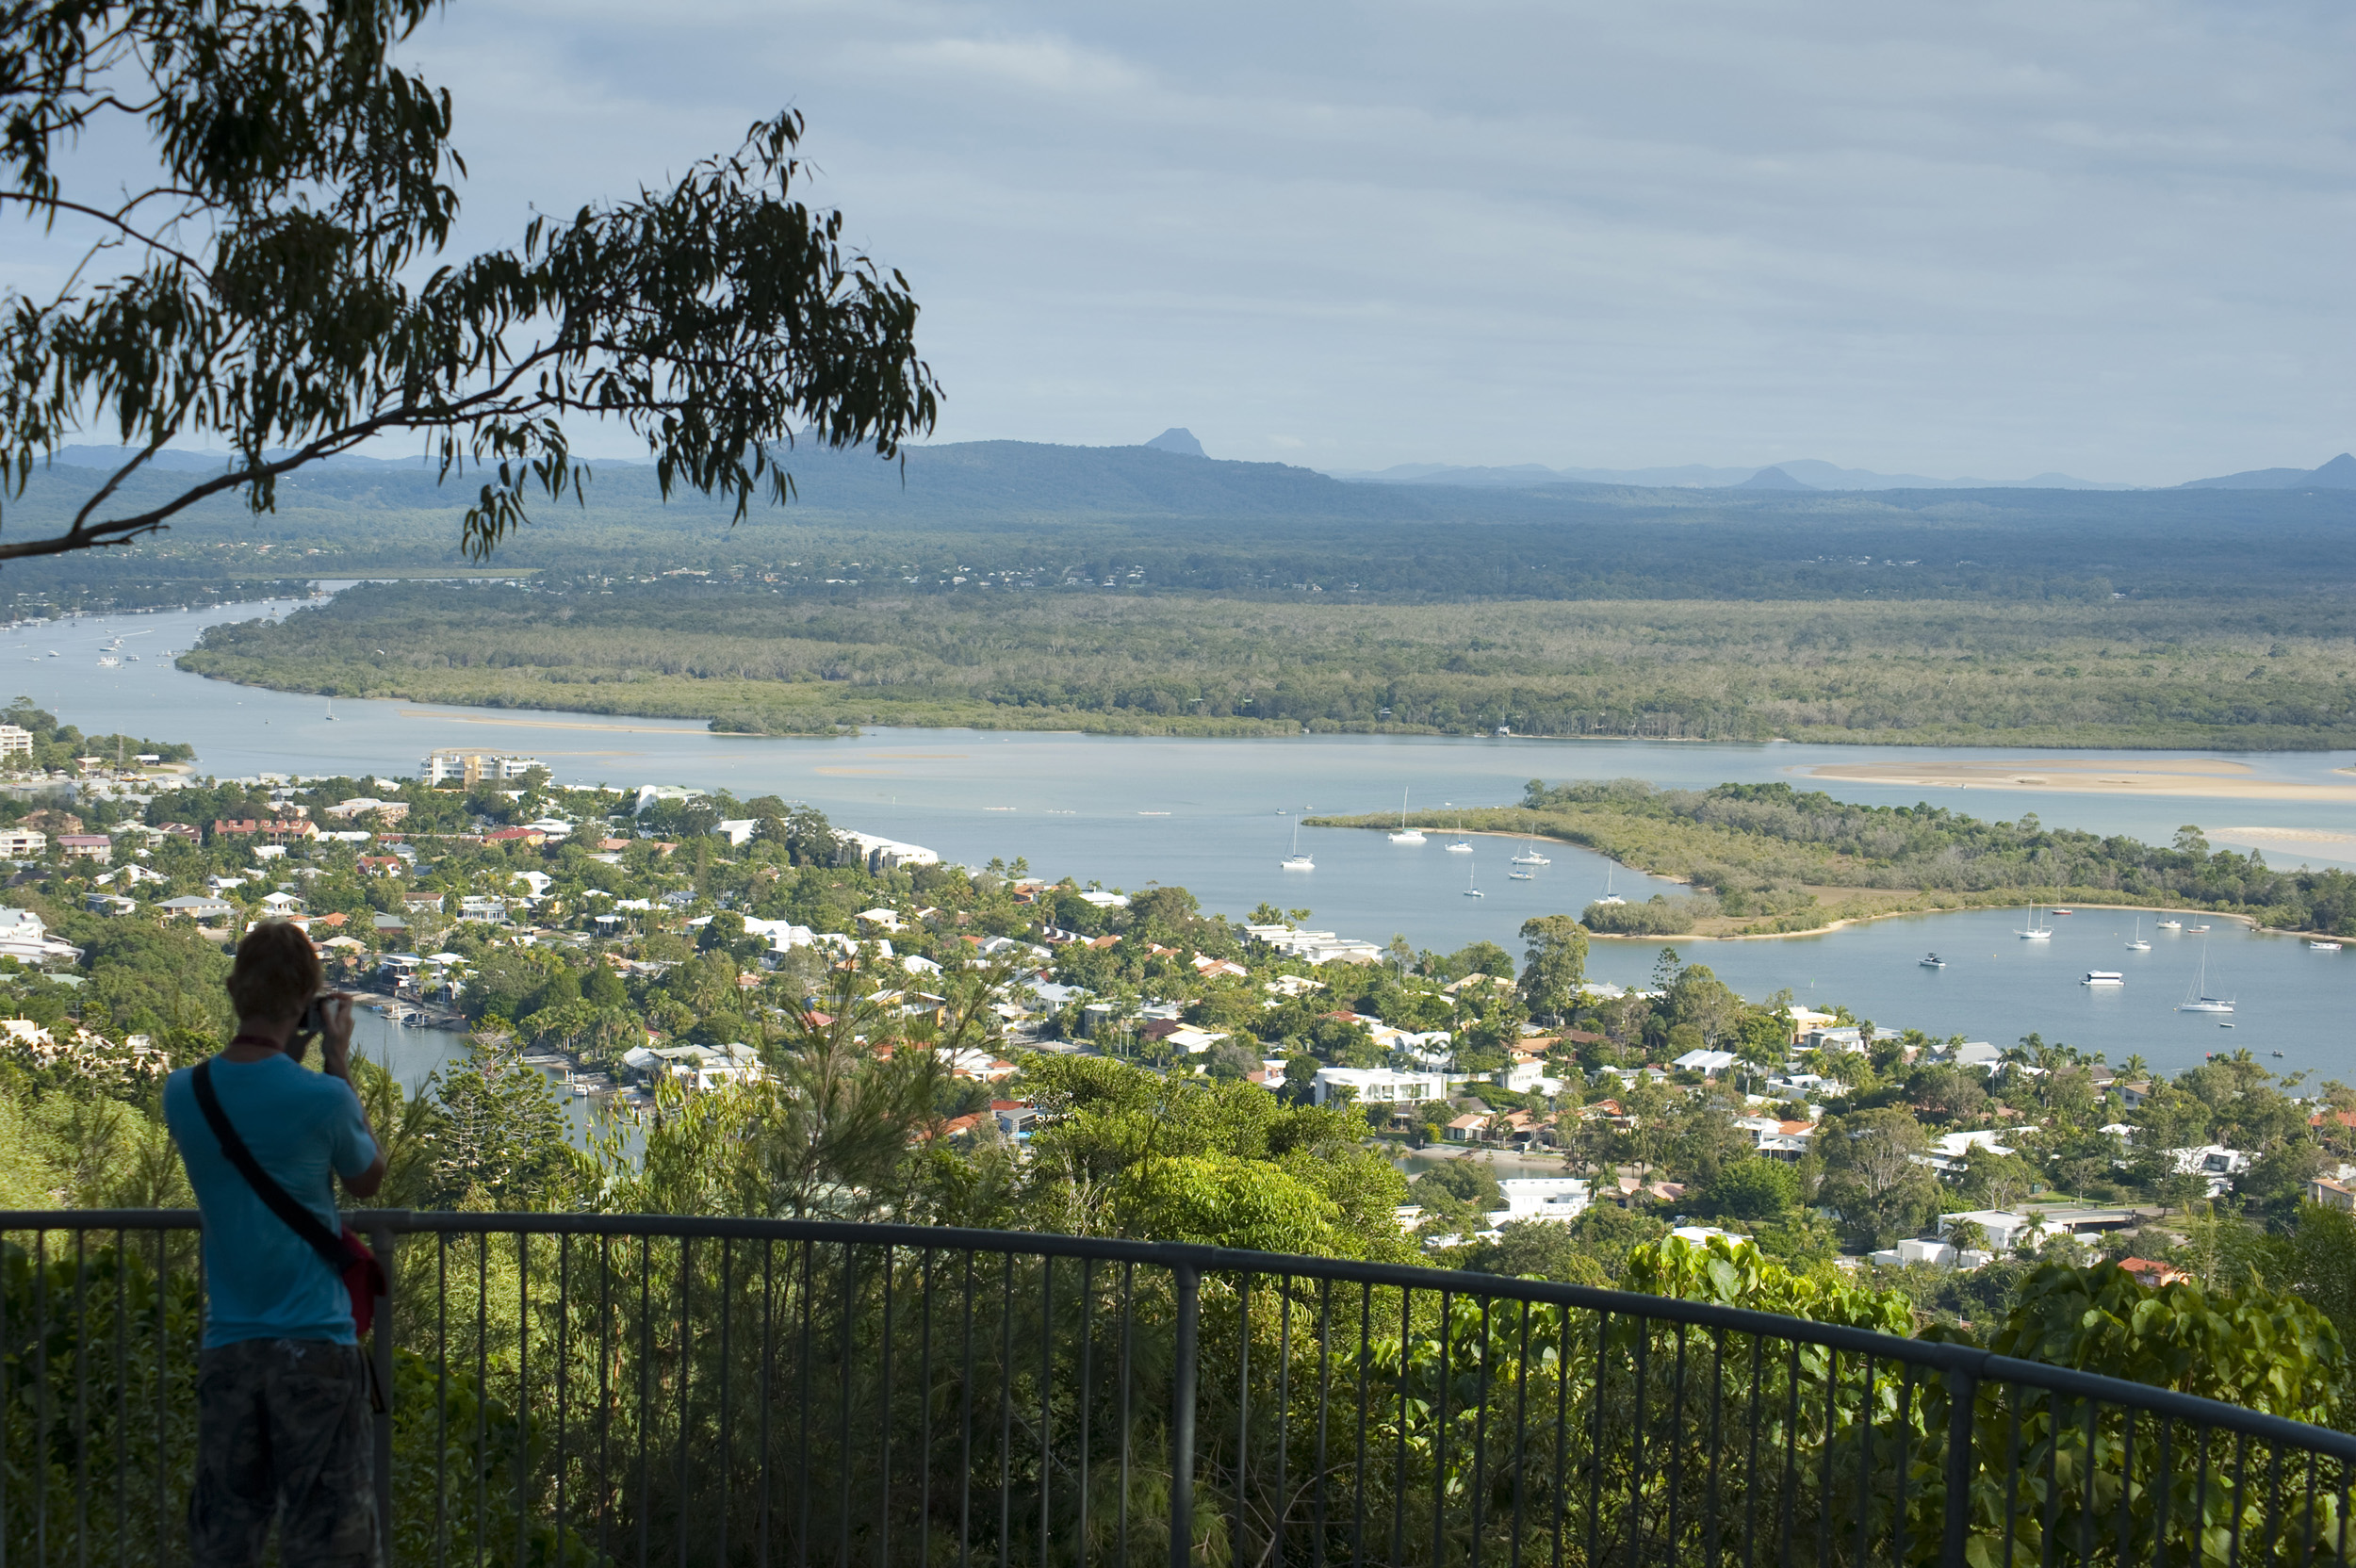 Noosa panorama in Queensland, Australia showing the Noosa estuary with the town nestling in lush tropical vegetation on its banks and a view over the surrounding countryside to distant mountains